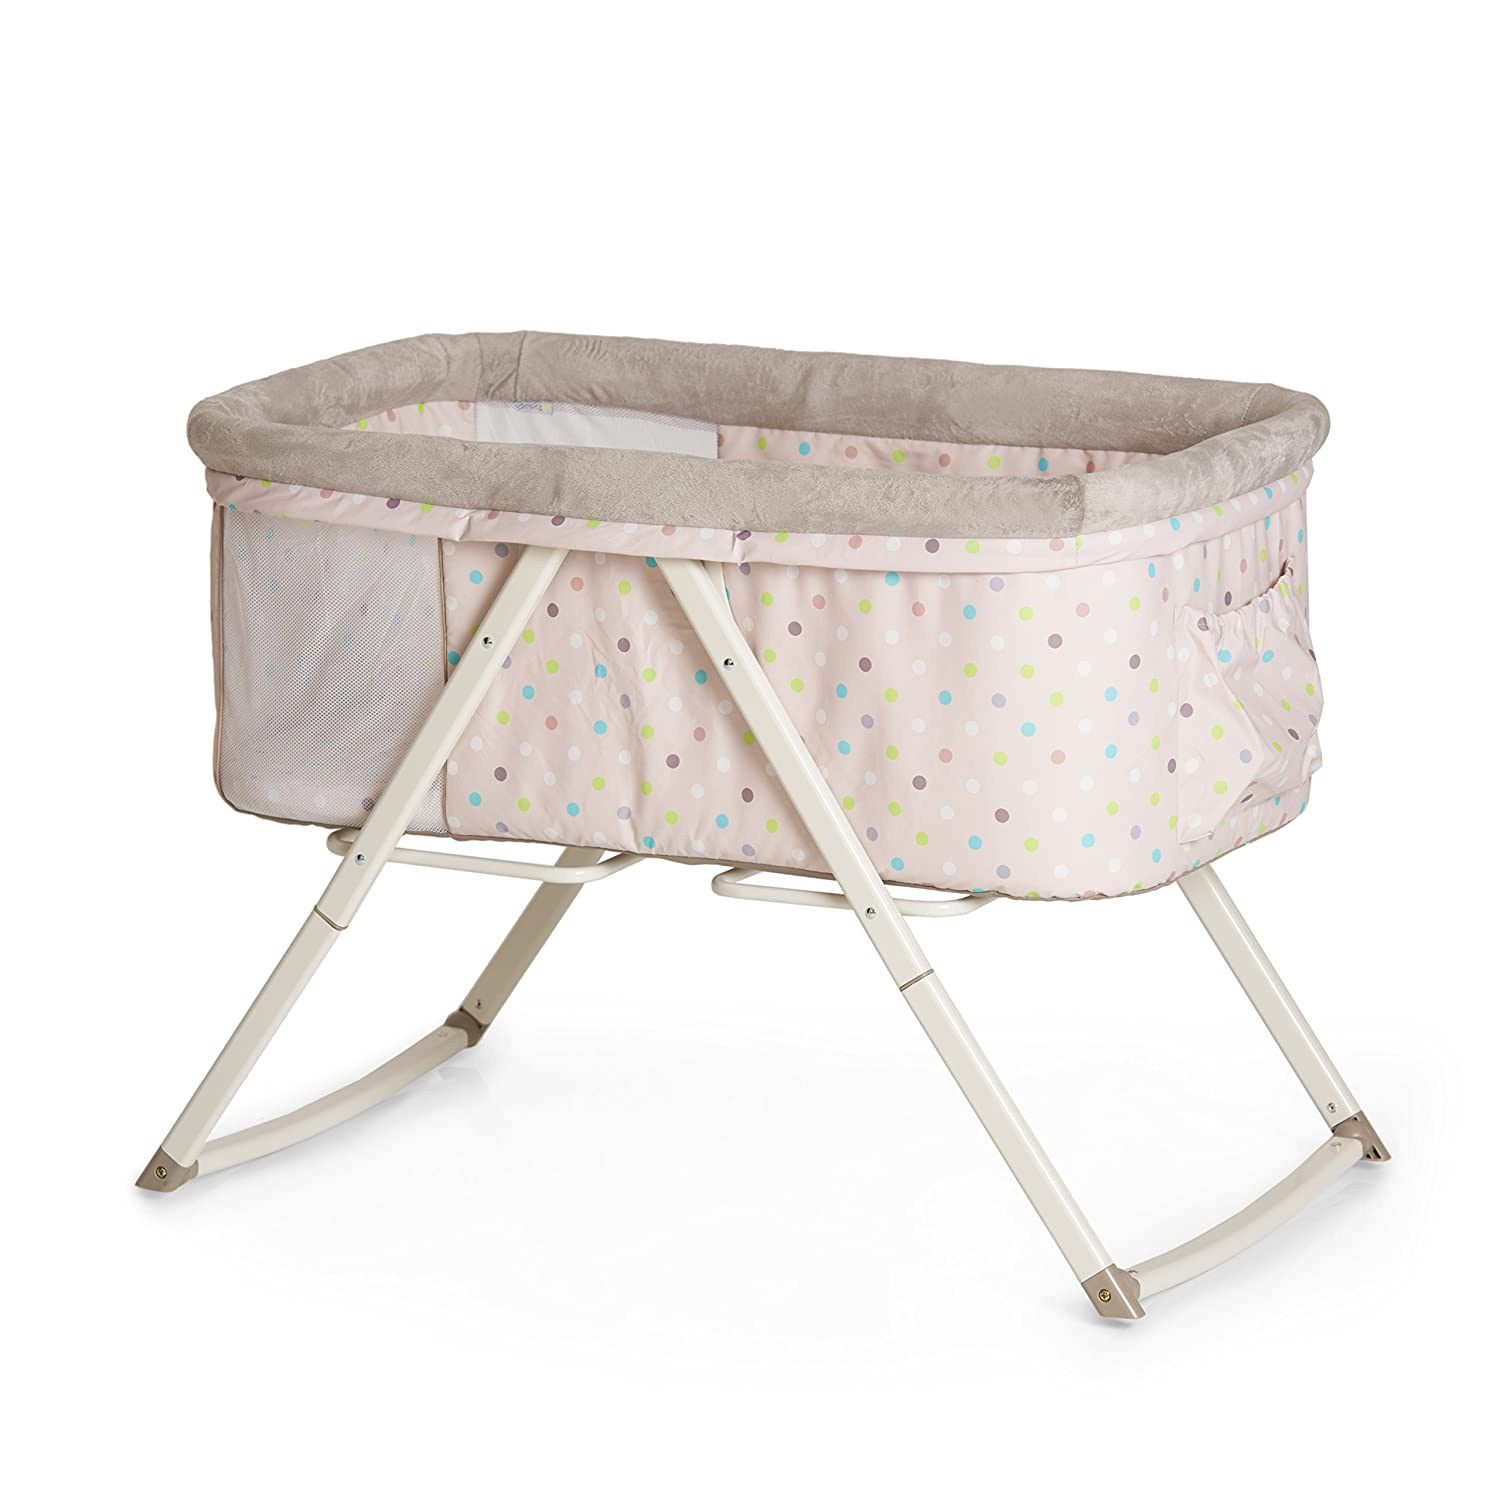 Hauck Dreamer Folding Bassinet, Side by Side sleeper, Moses Basket, Multi Dots Sand 608920